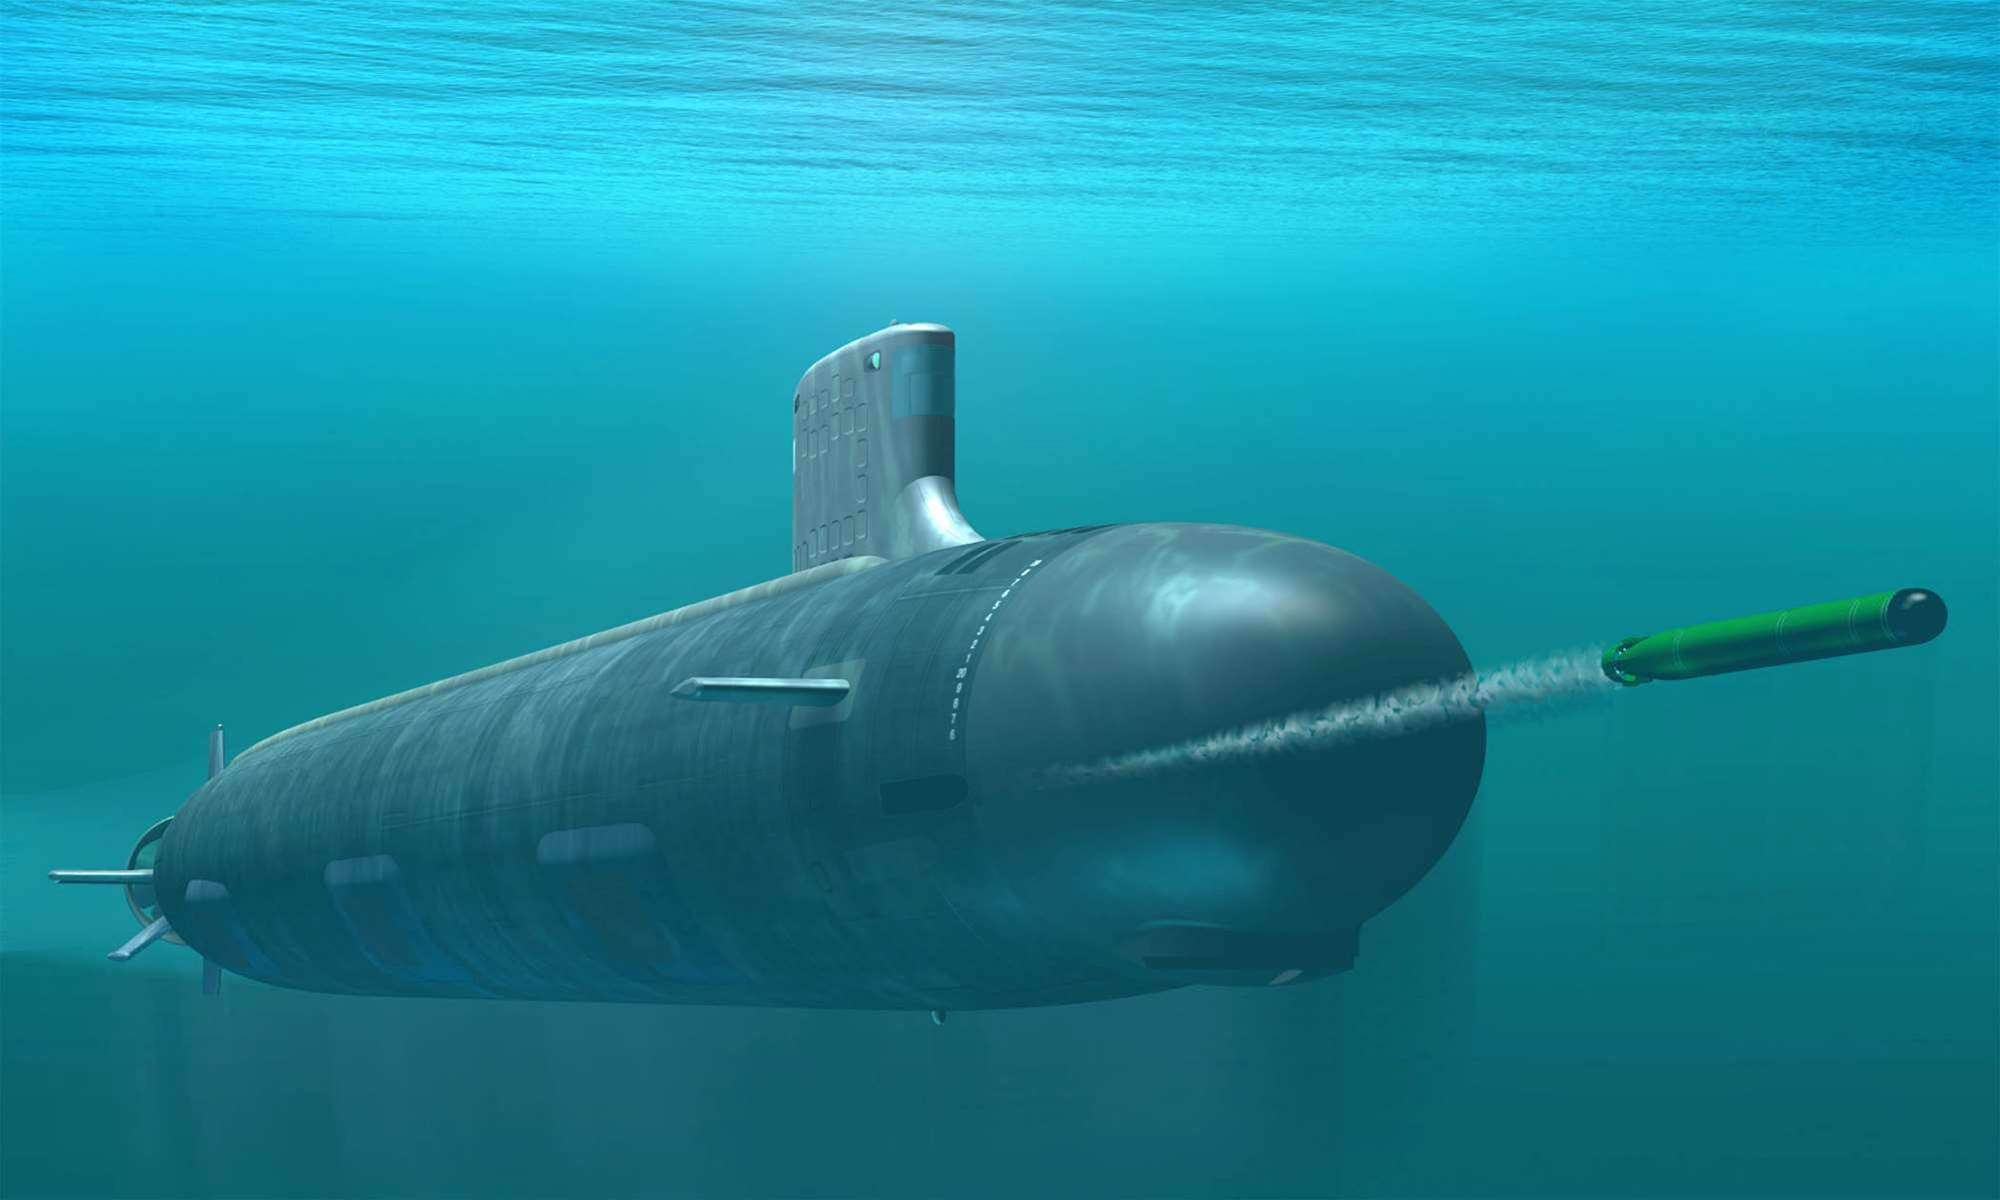 Facebook Executive Is The Sponsor Of A New Navy Submarine